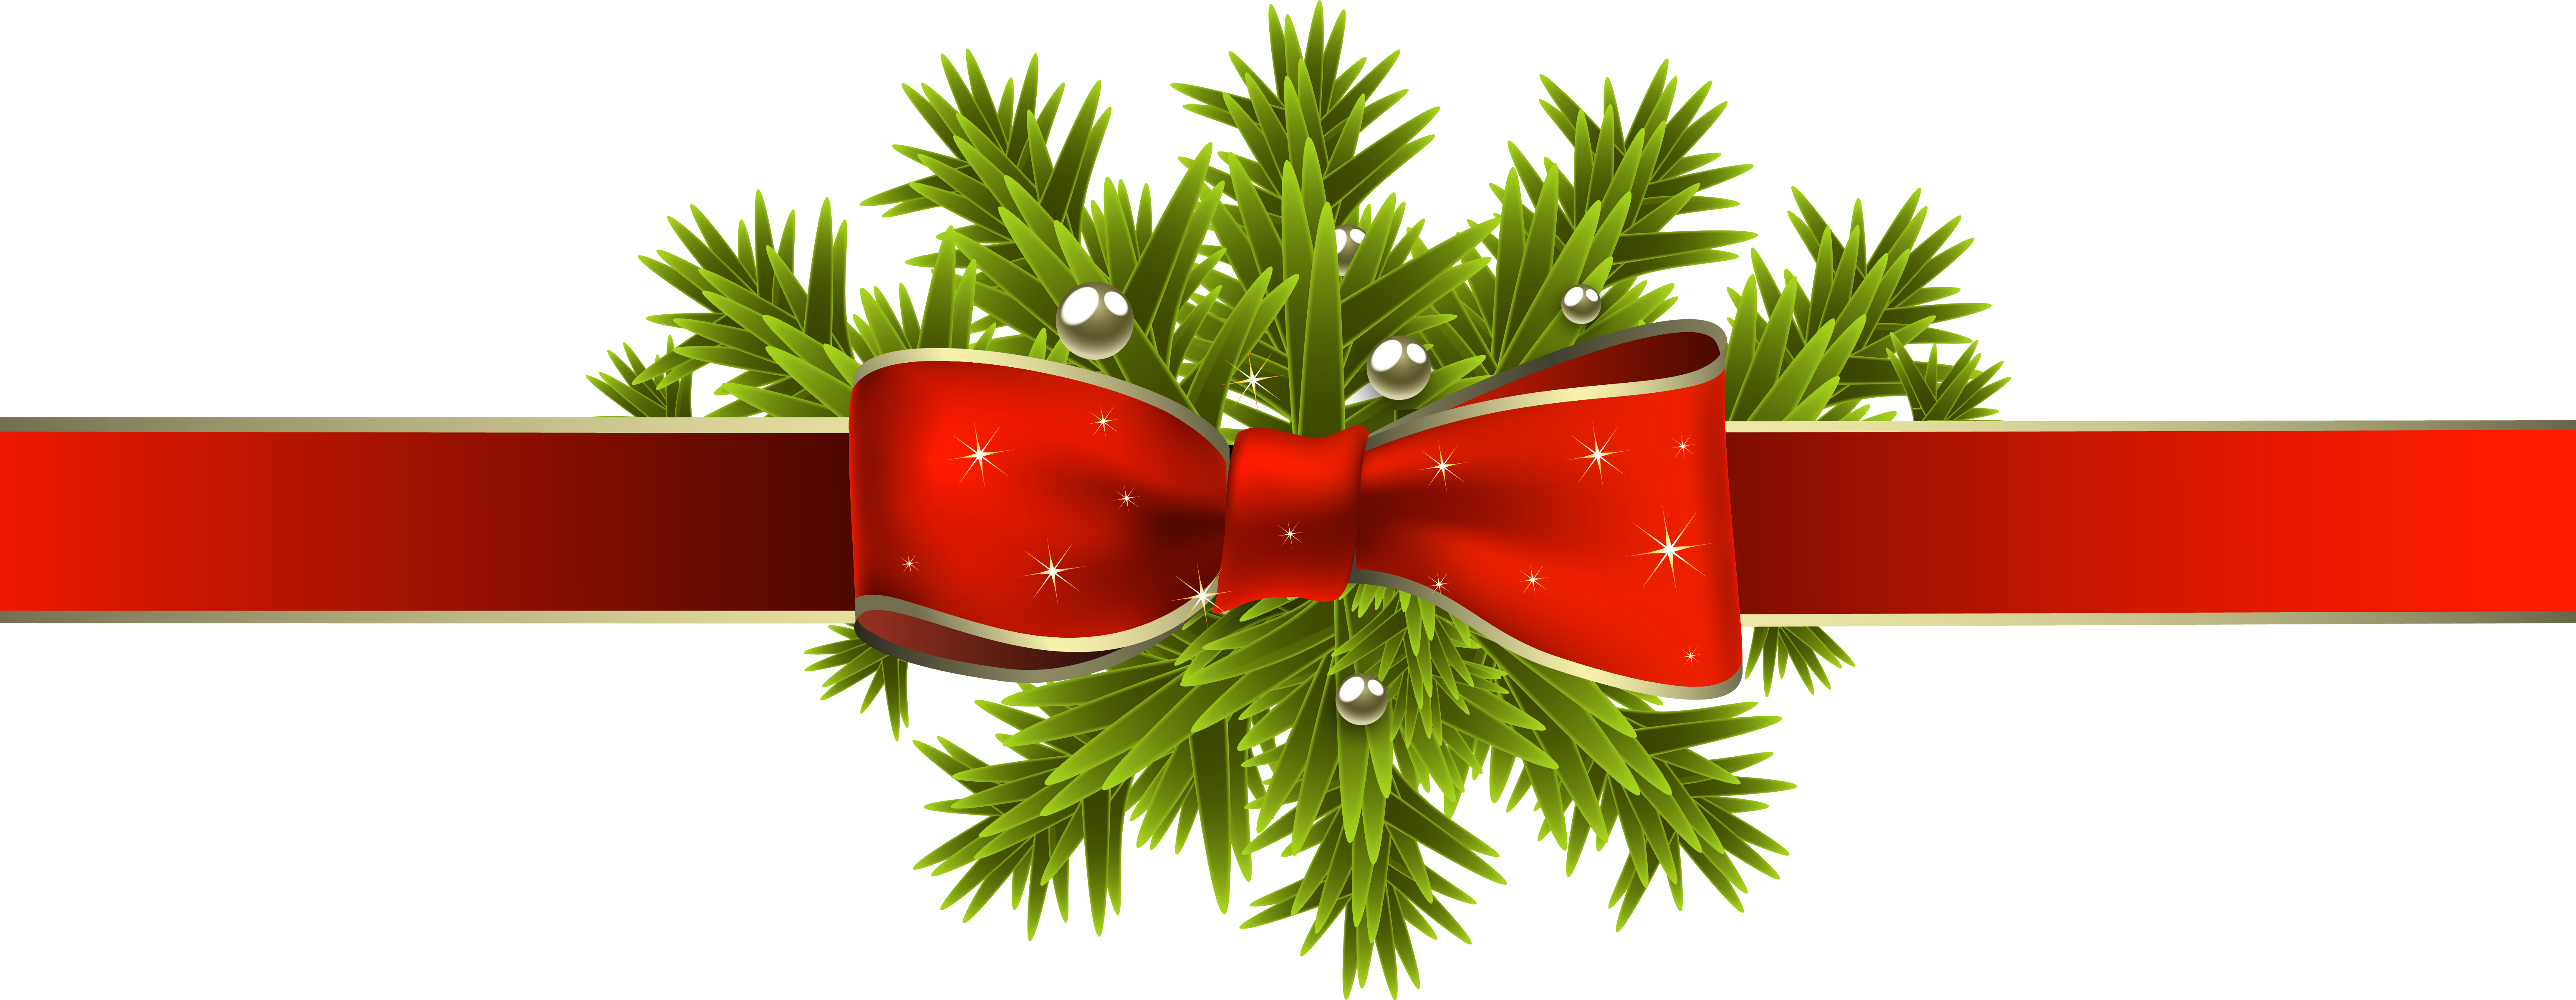 Red christmas ribbon with. Branch clipart clipart transparent background